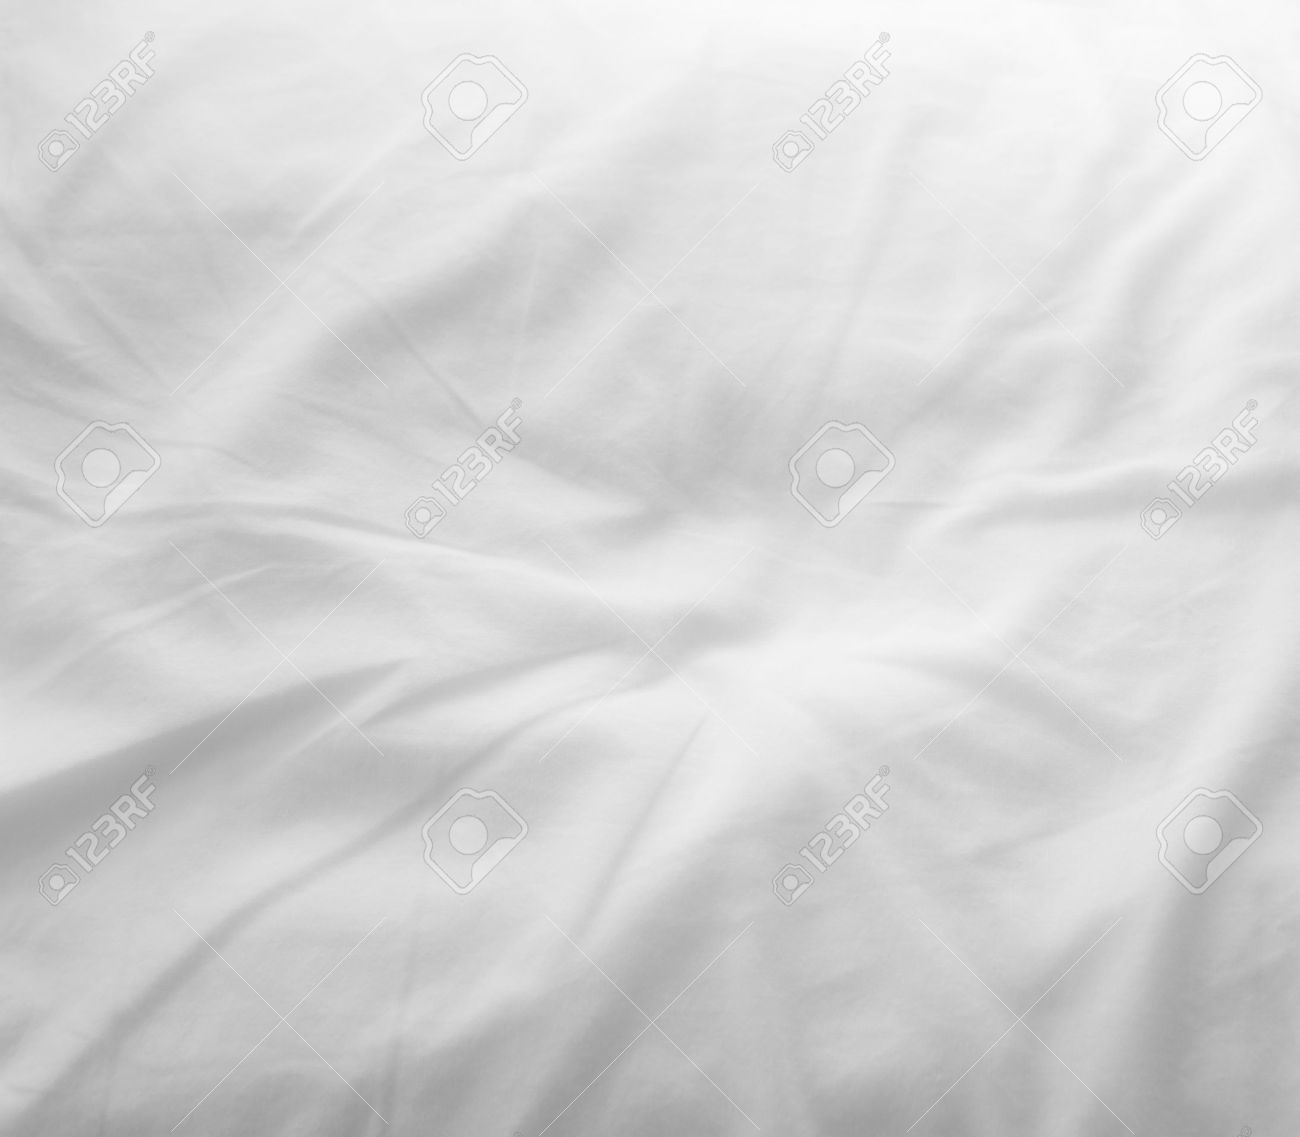 Black and white bed sheets texture - Stock Photo Soft White Bed Sheets Background